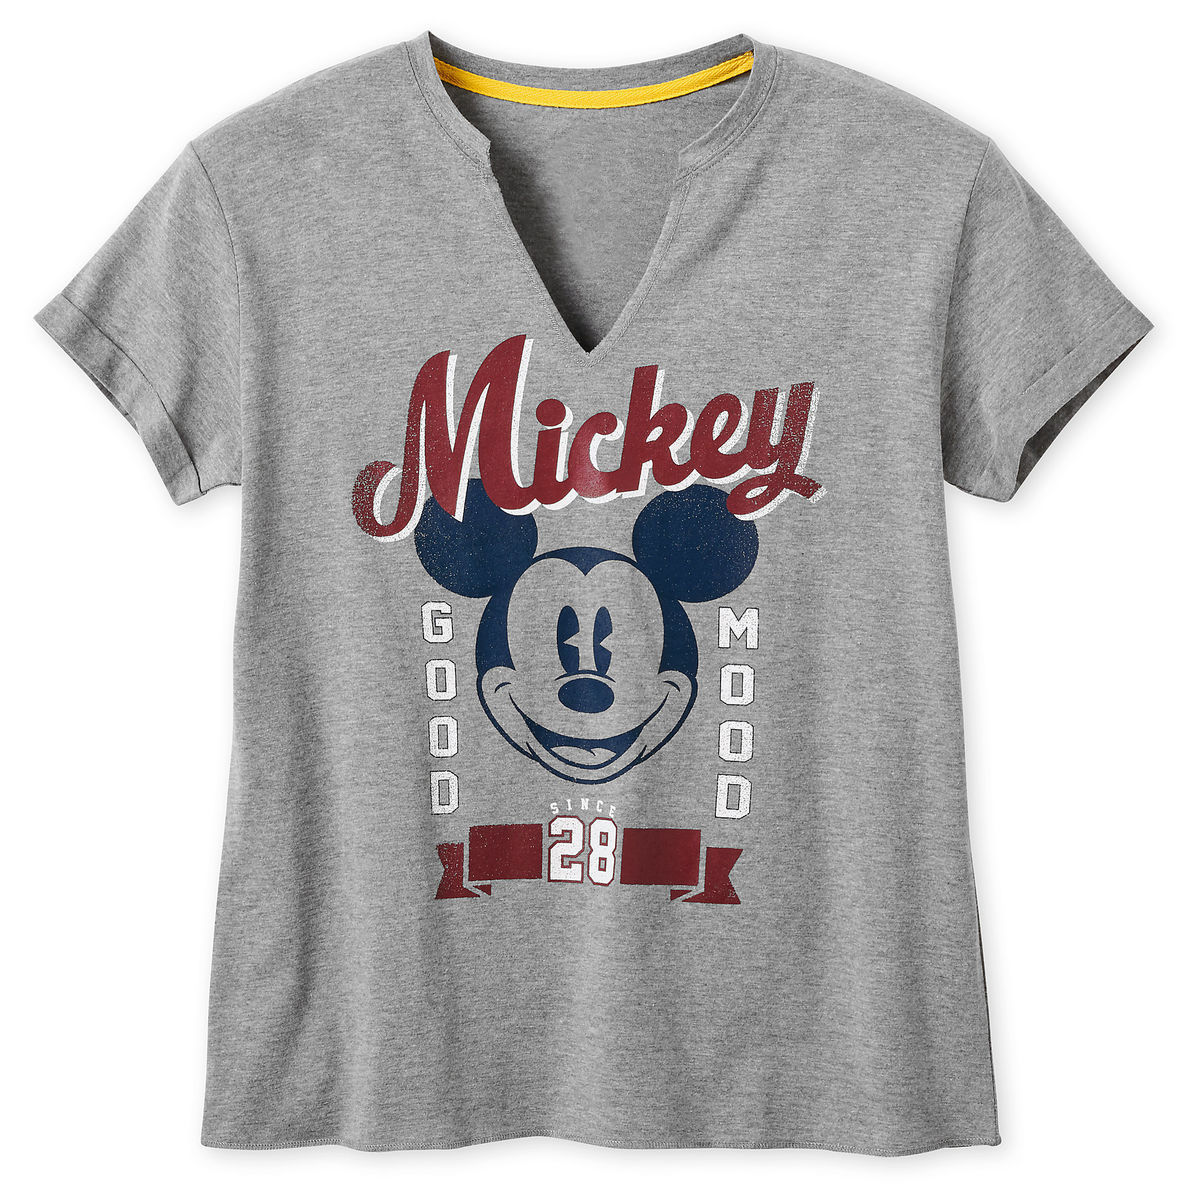 Disney Shirt for Women - Mickey Mouse - Good Mood